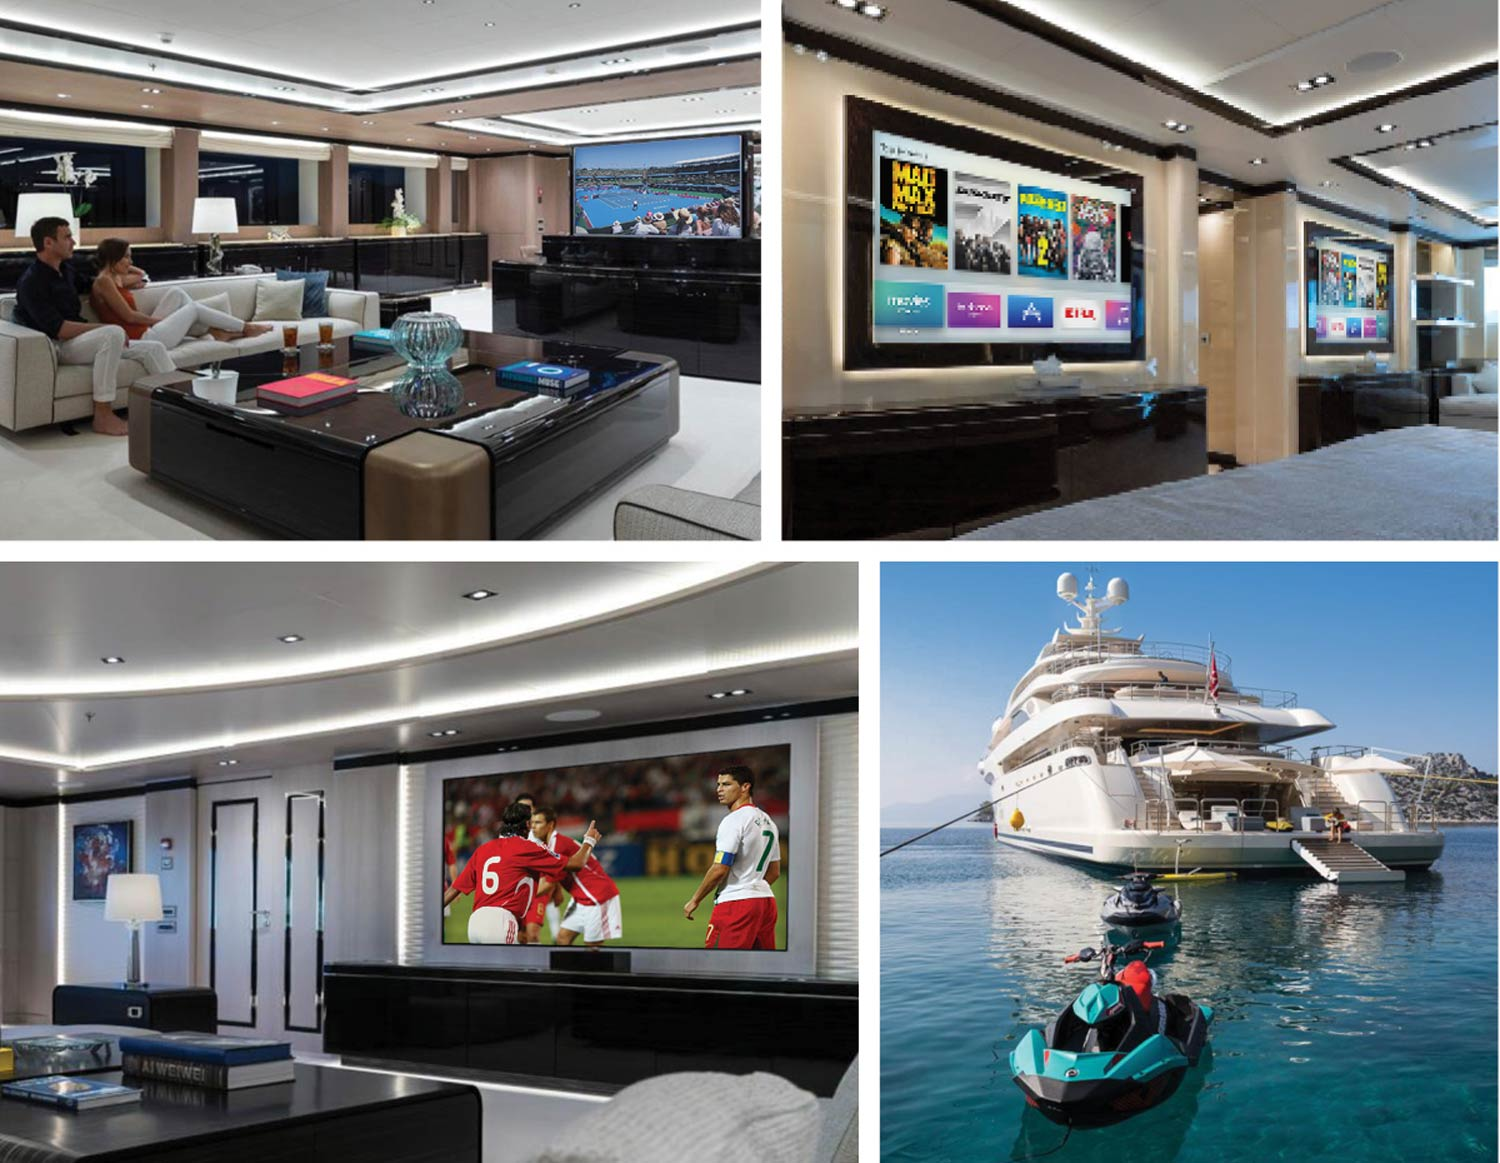 Yacht_4images.jpg